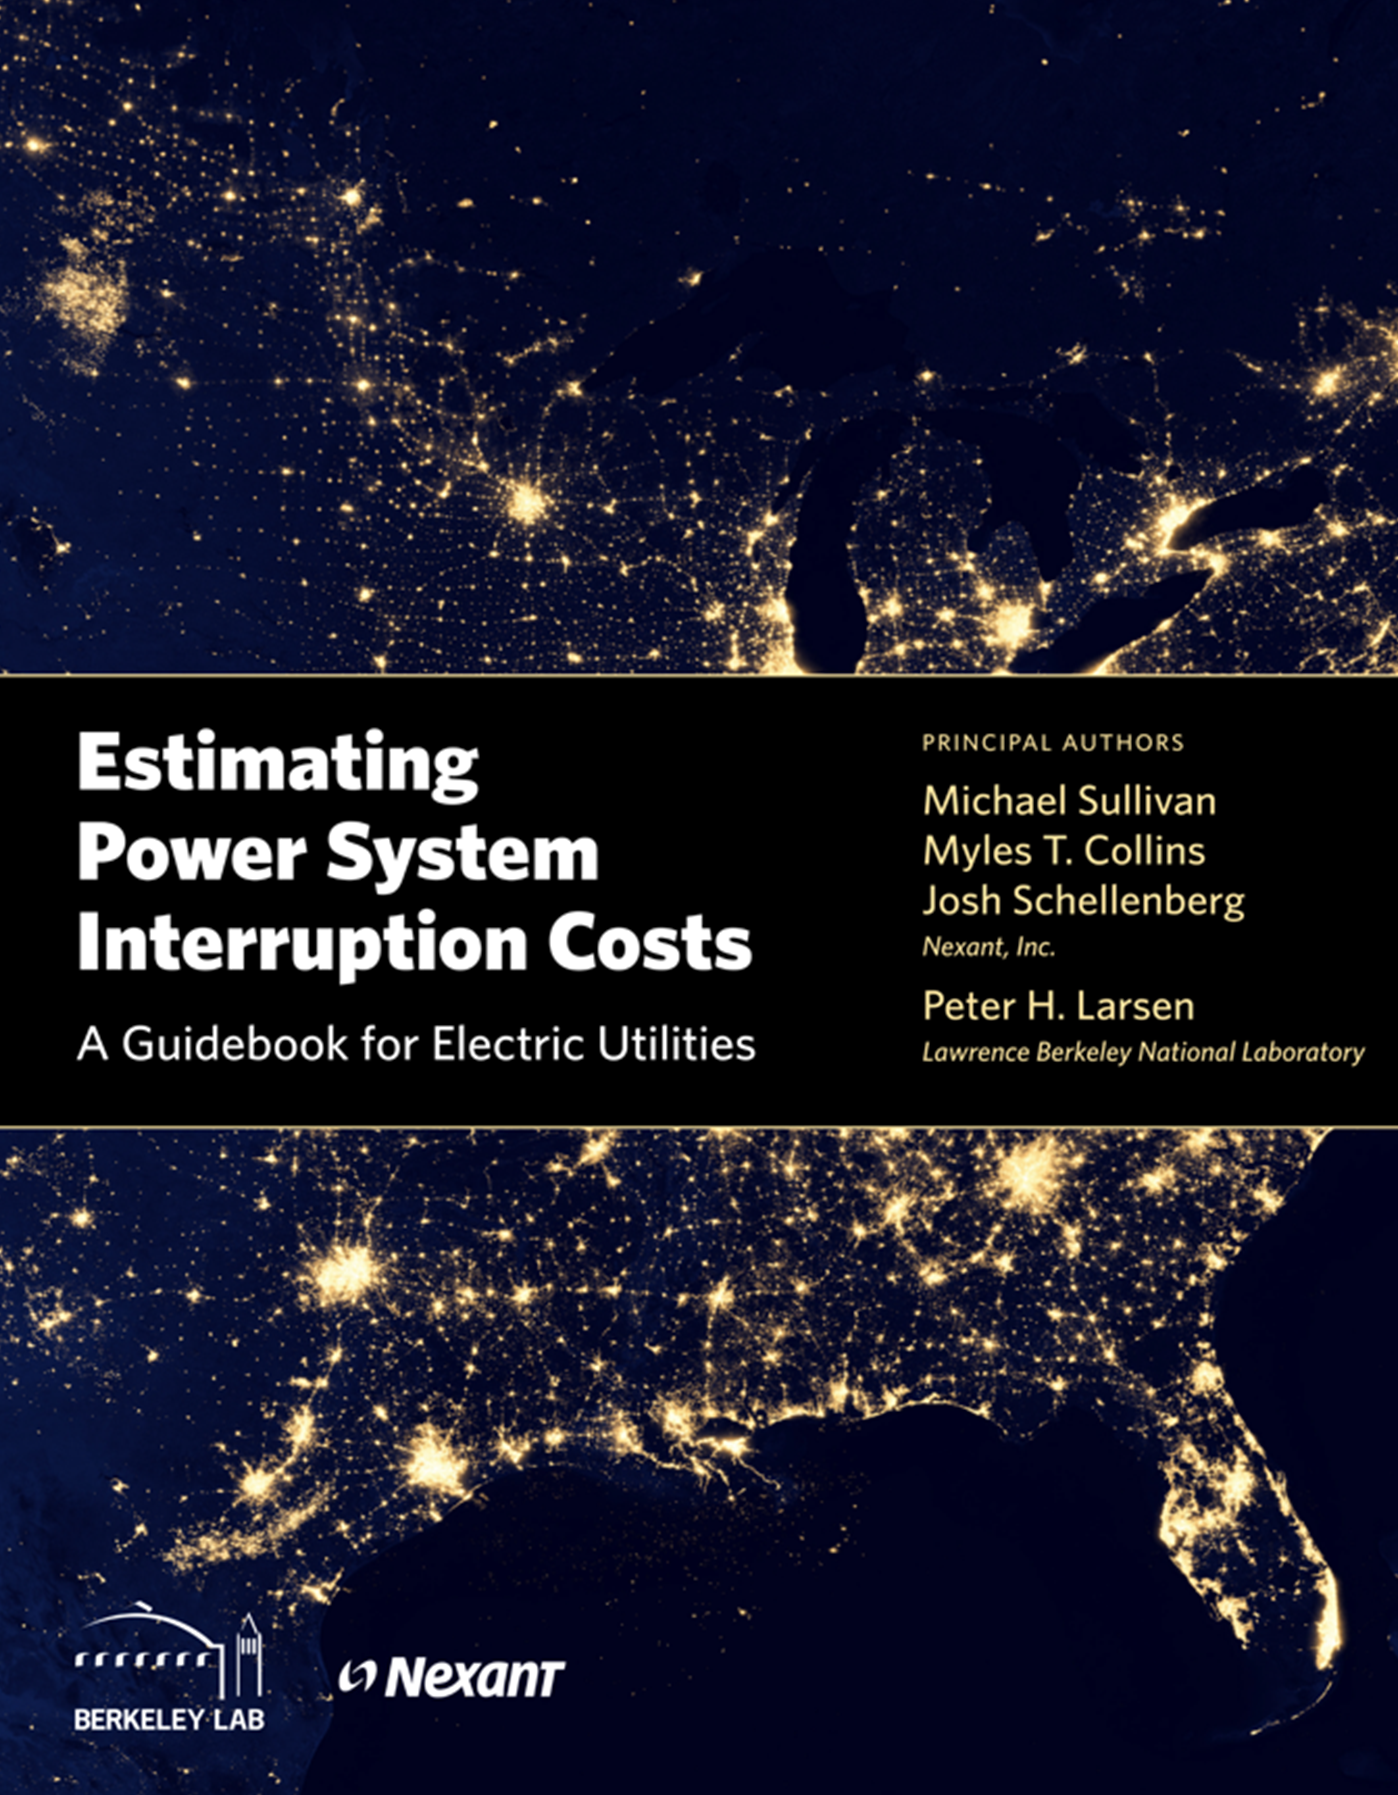 Estimating Power System Interruption Costs: A Guidebook for Electric Utilities